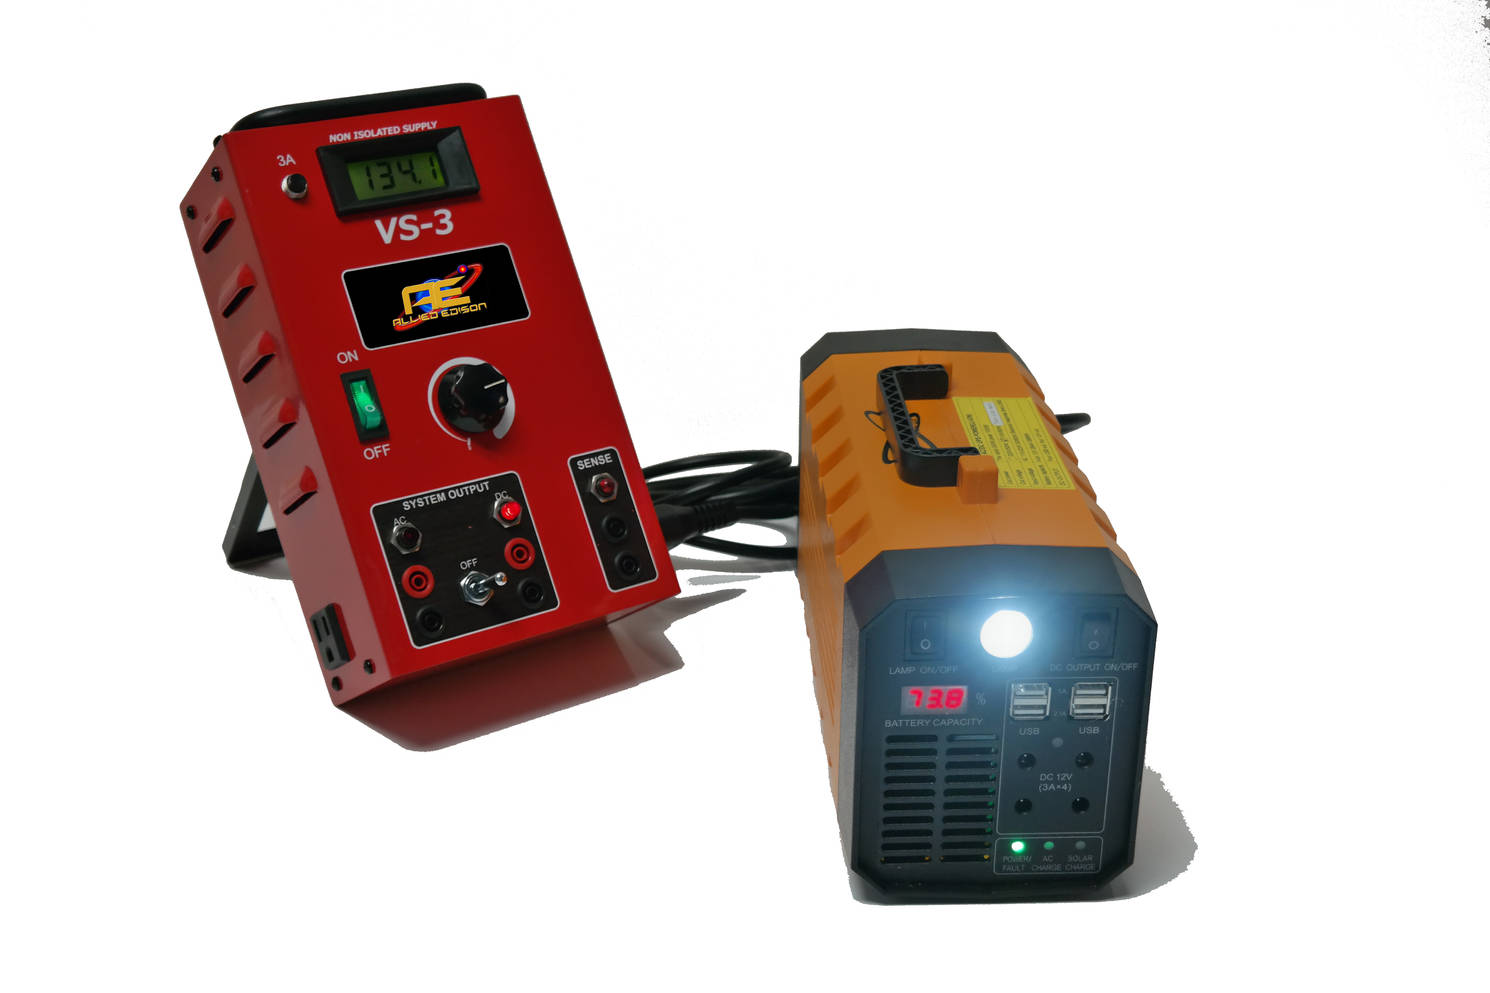 Allied Edison VS-3 power supply powered by the UPS power supply